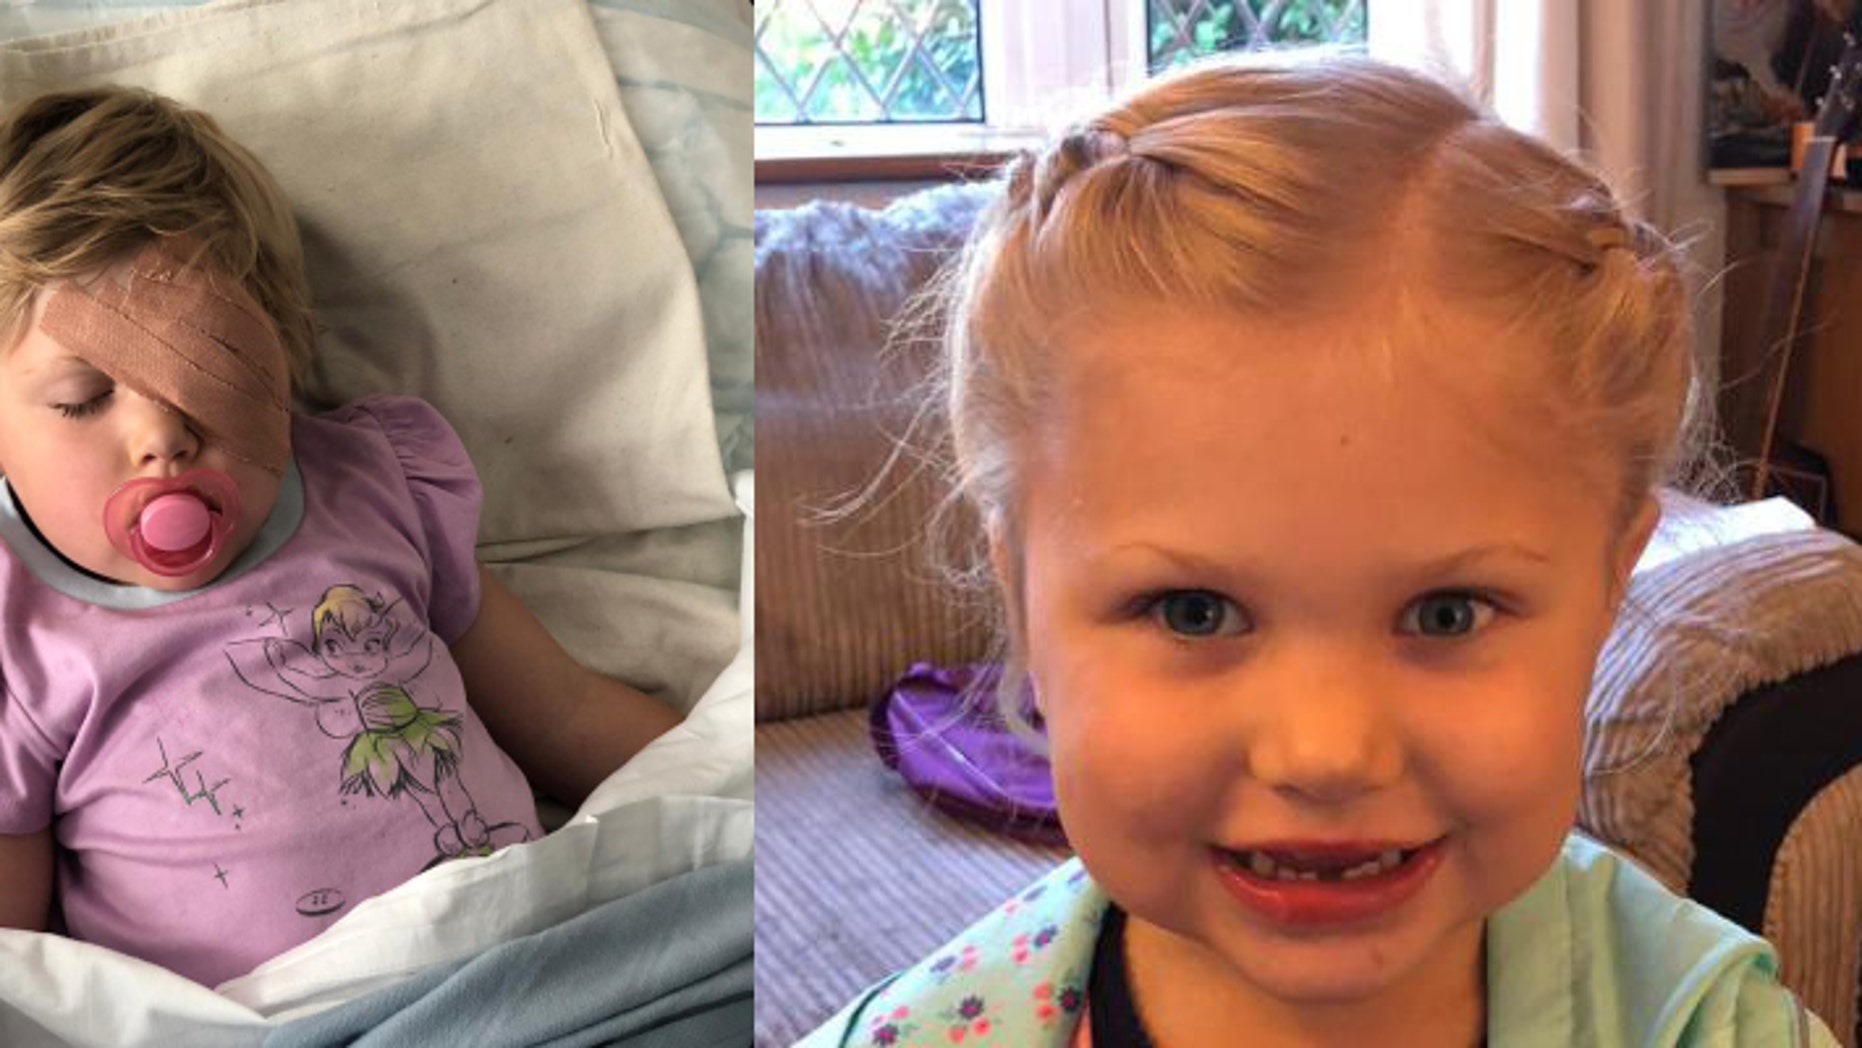 Alice Taylor, 2, was diagnosed with a rare eye cancer shortly after playing a game of pirates with her mom.